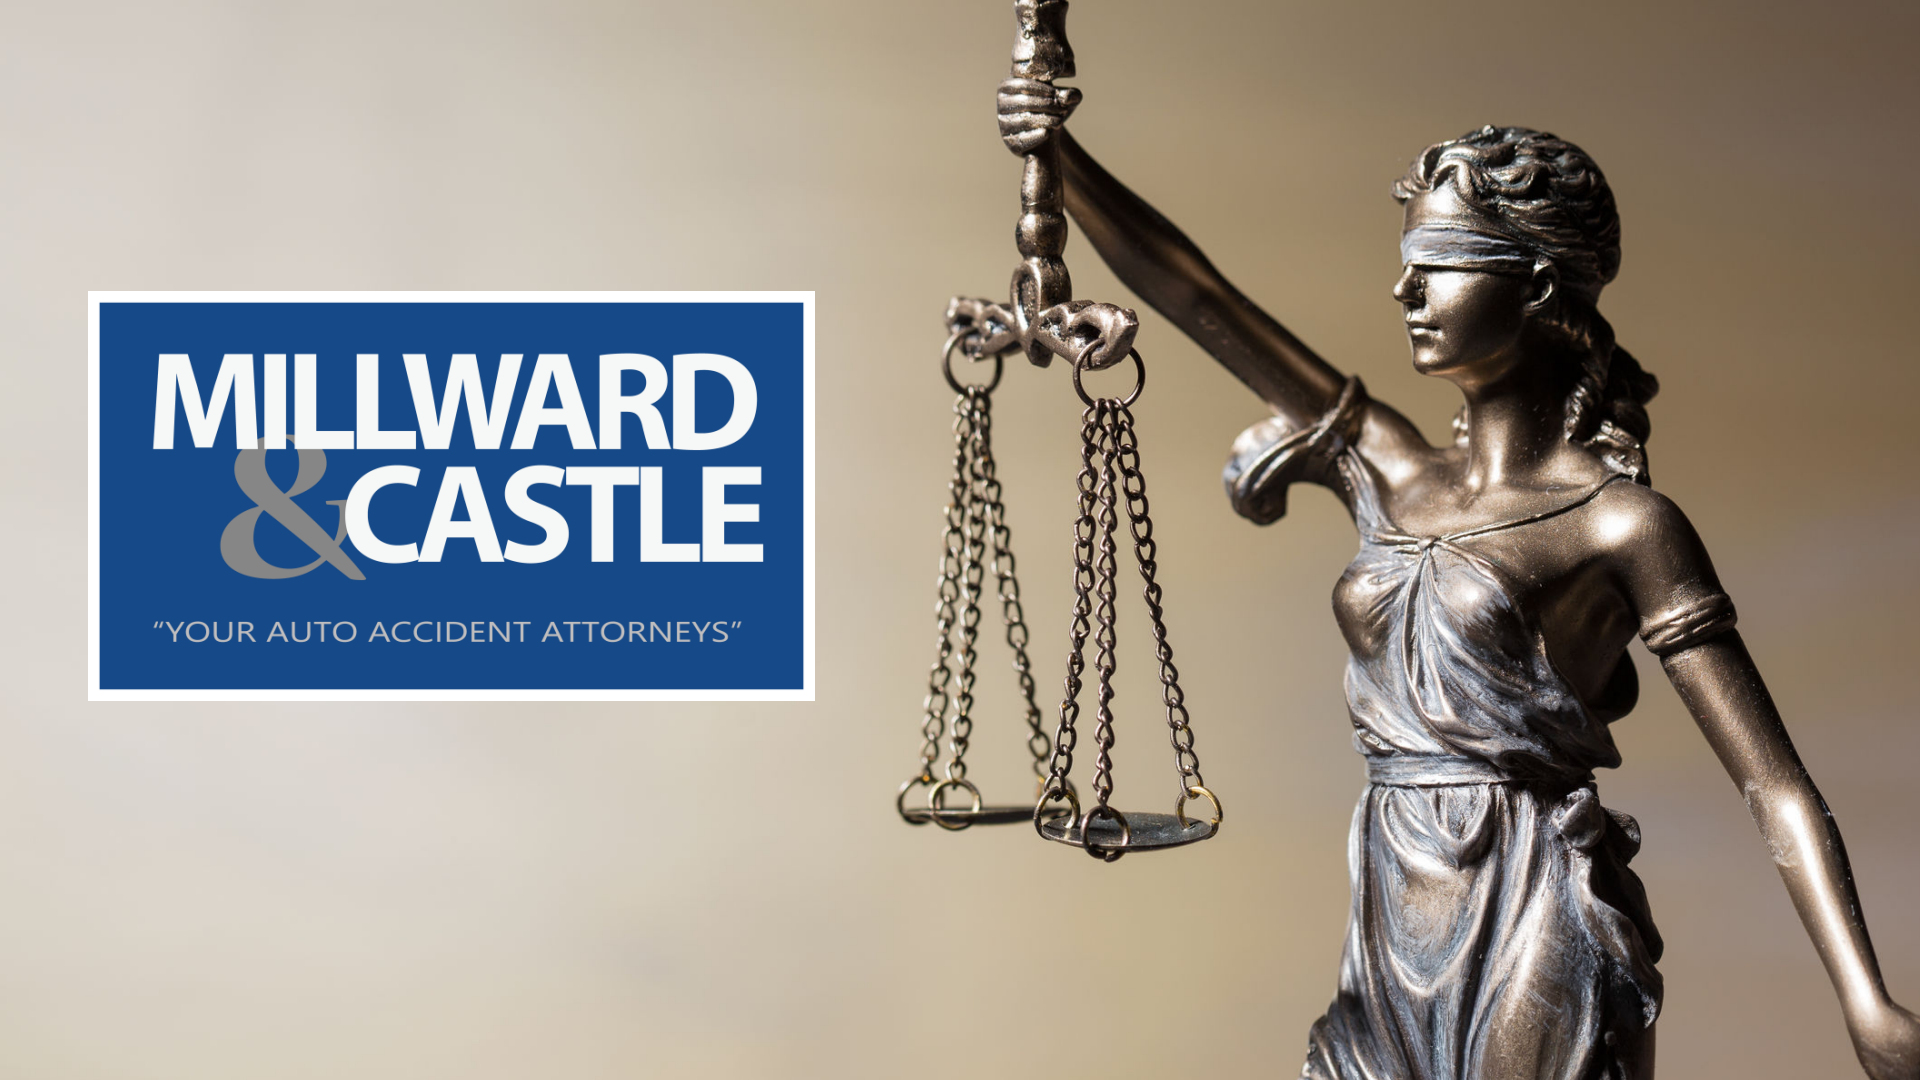 Millward & Castle Attorneys at Law - Barbourville, KY | About Us